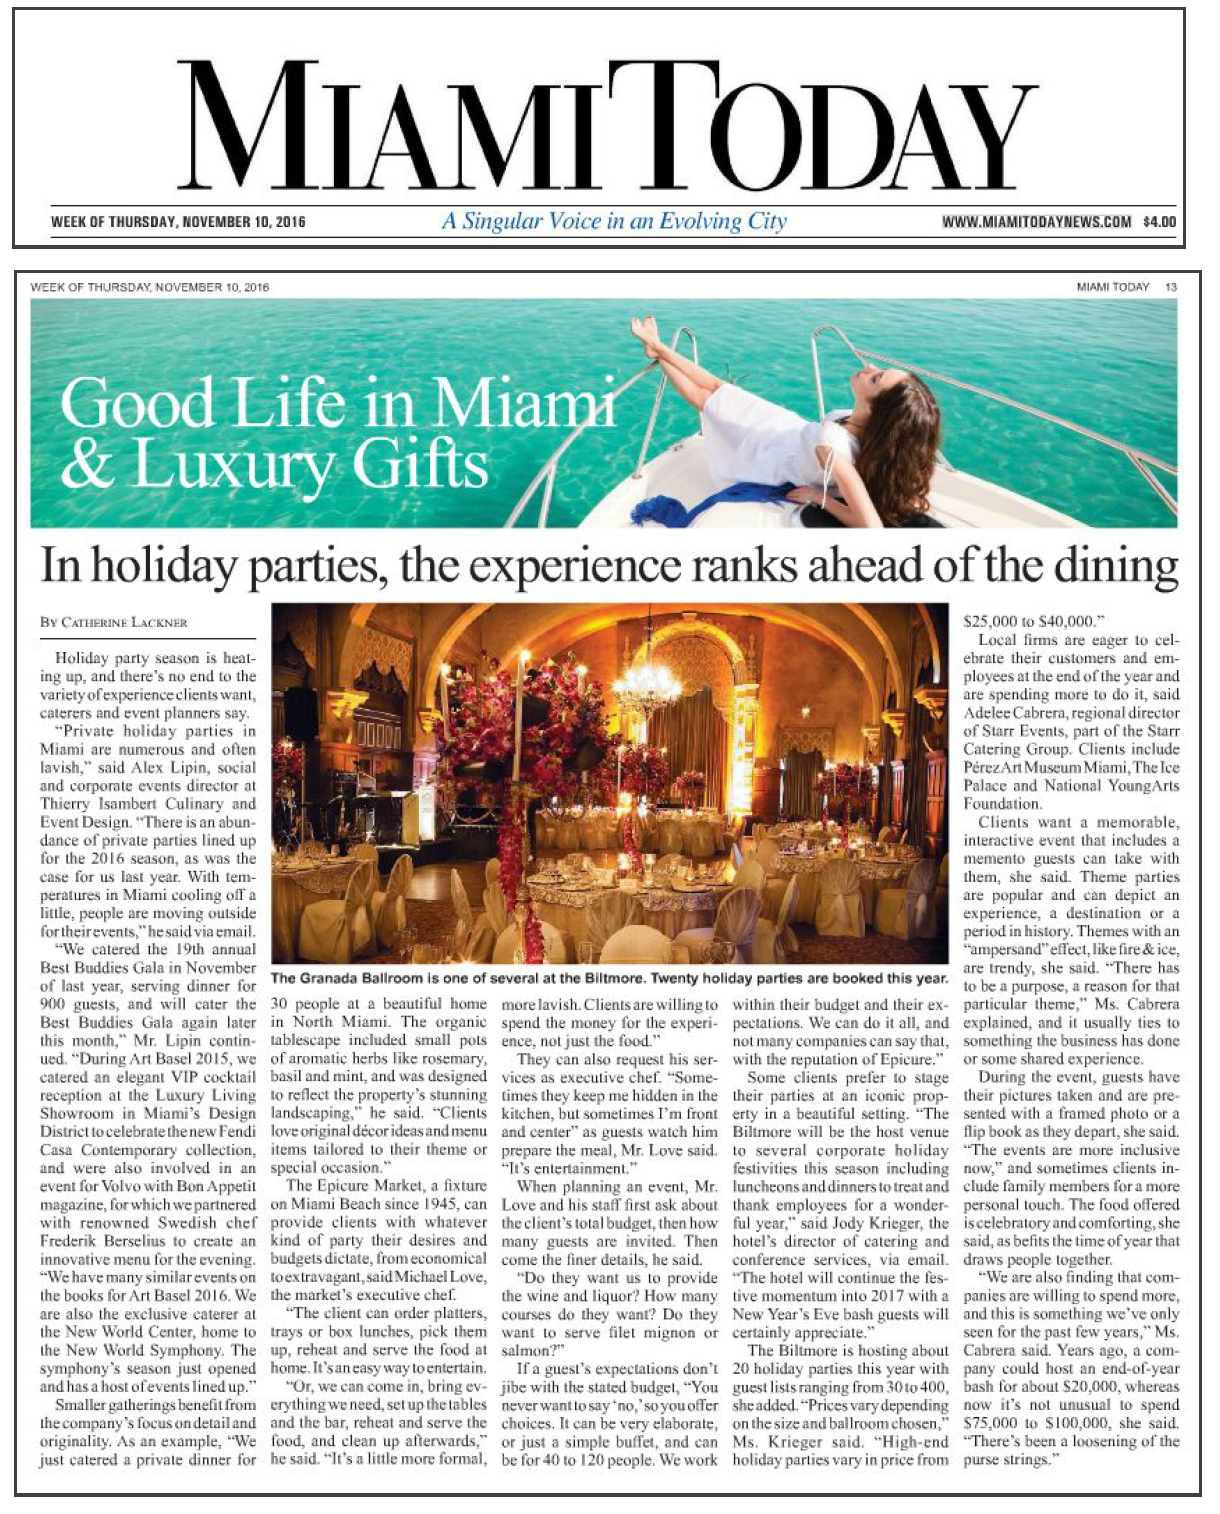 MIAMI TODAY — Thierry Isambert Culinary & Event Design